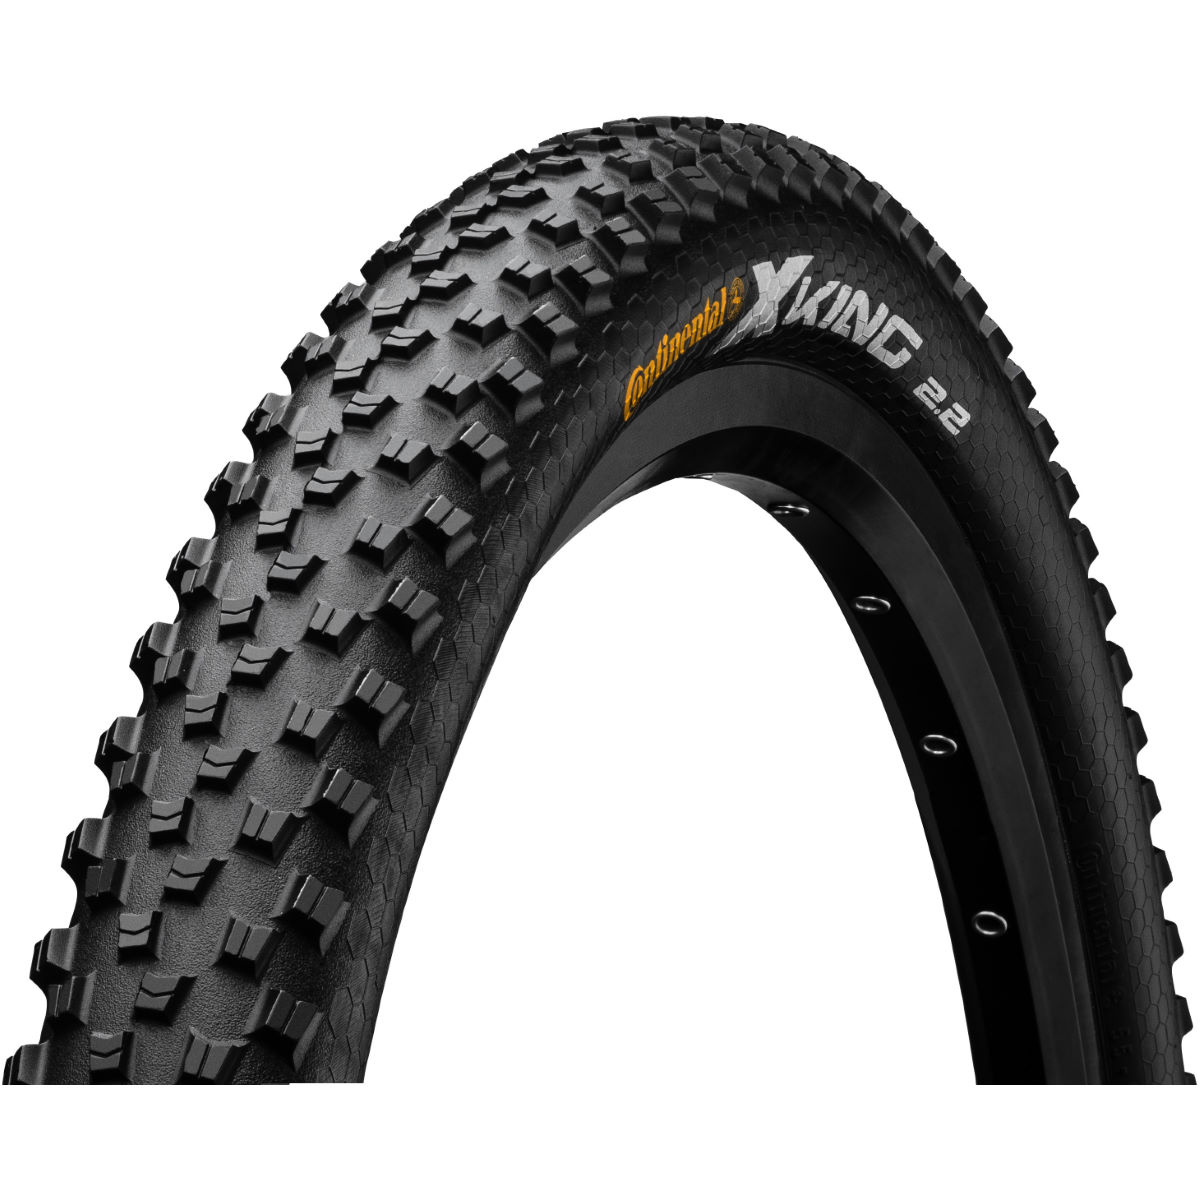 Pneu VTT Continental X King (souple, ProTection, 2018) - 2.3' 29'